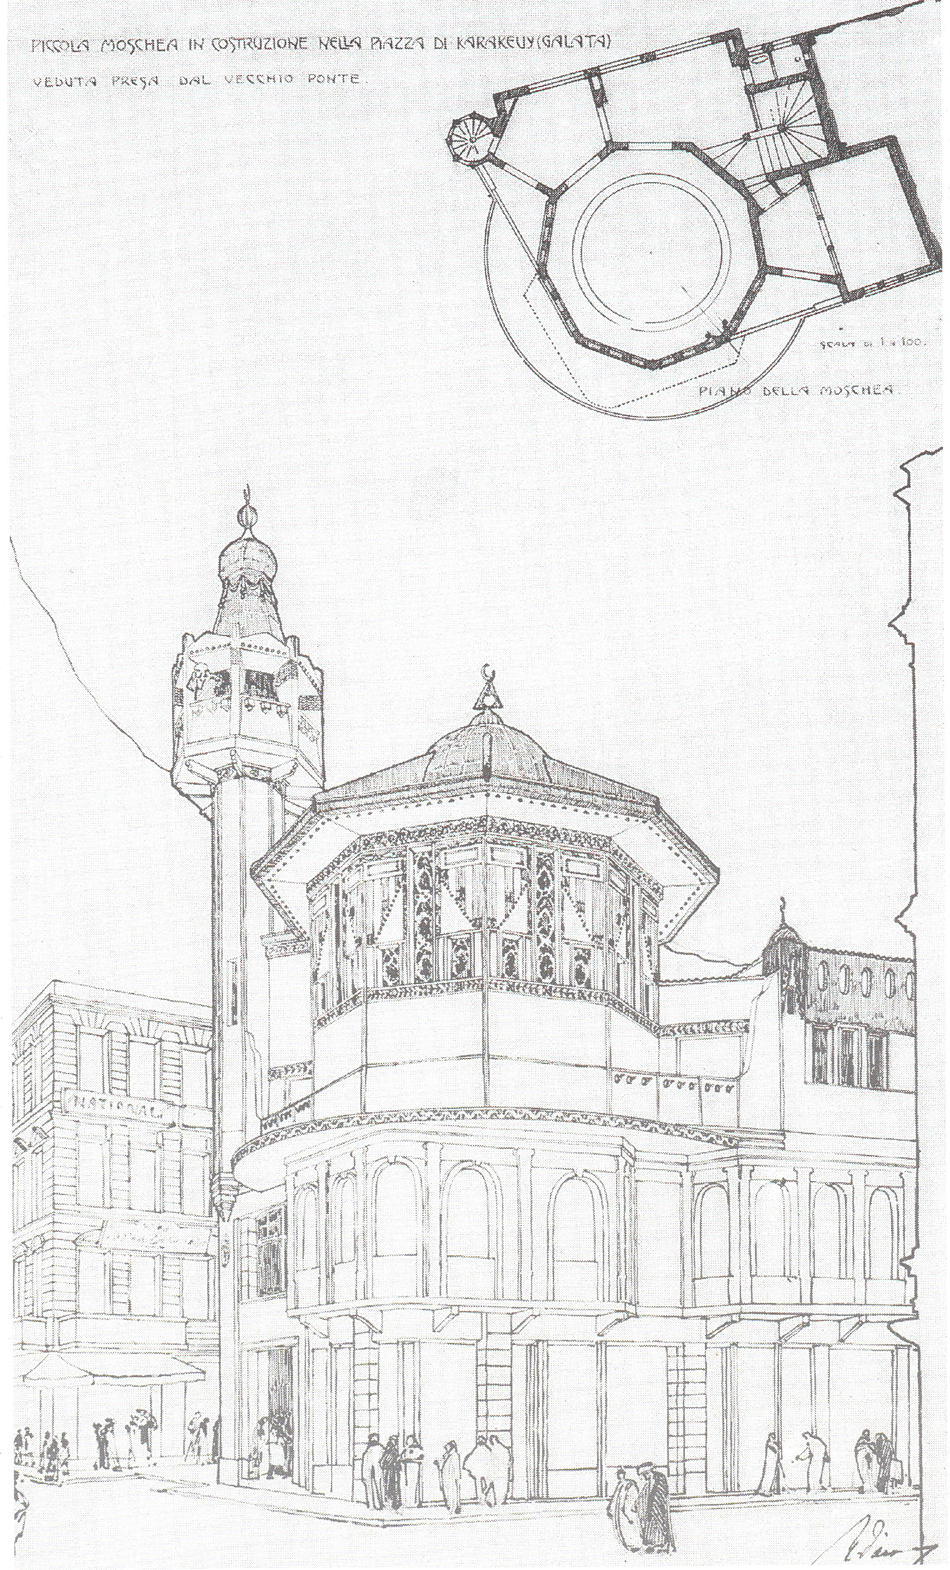 karakoymosque copy